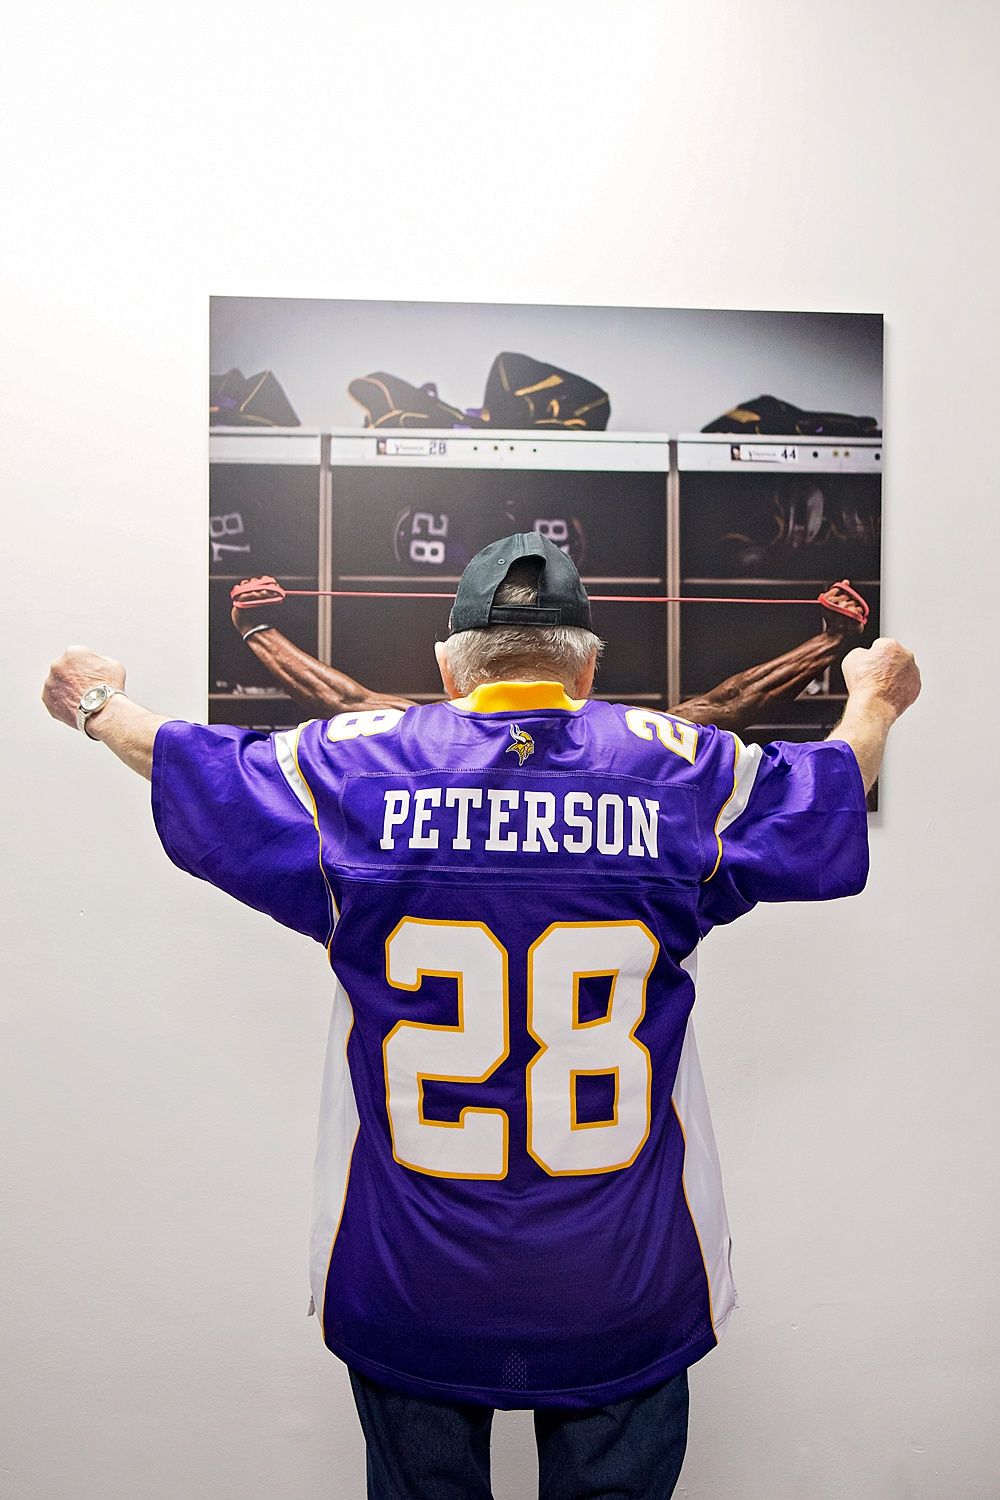 Copying an image of Adrian Peterson hanging in the gym.